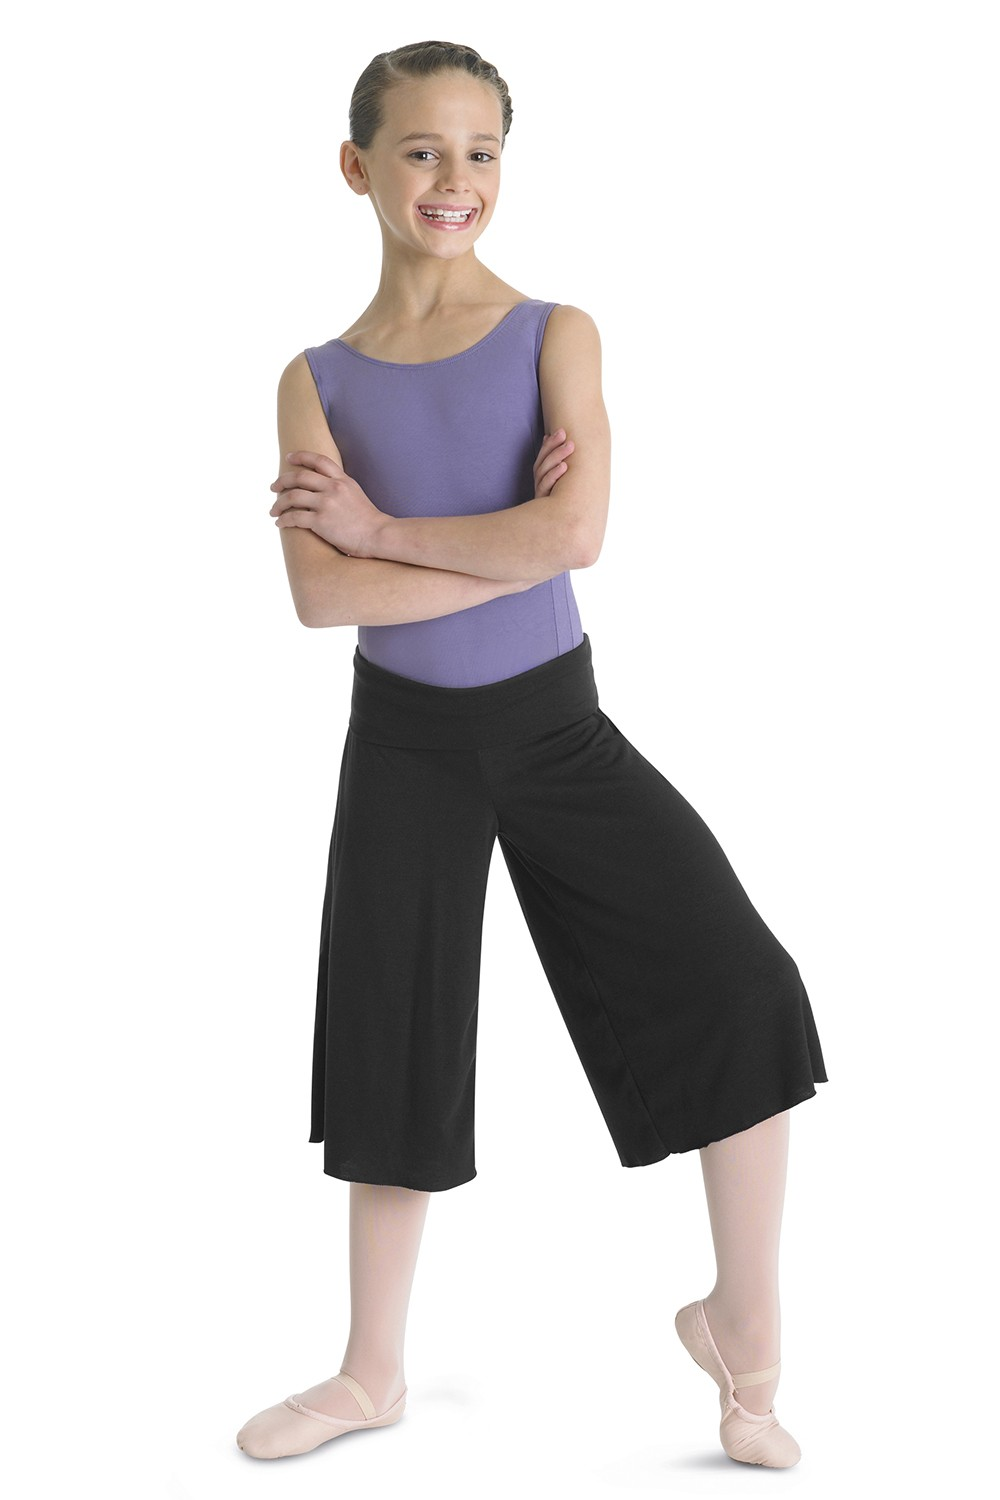 Children's Dance Pants